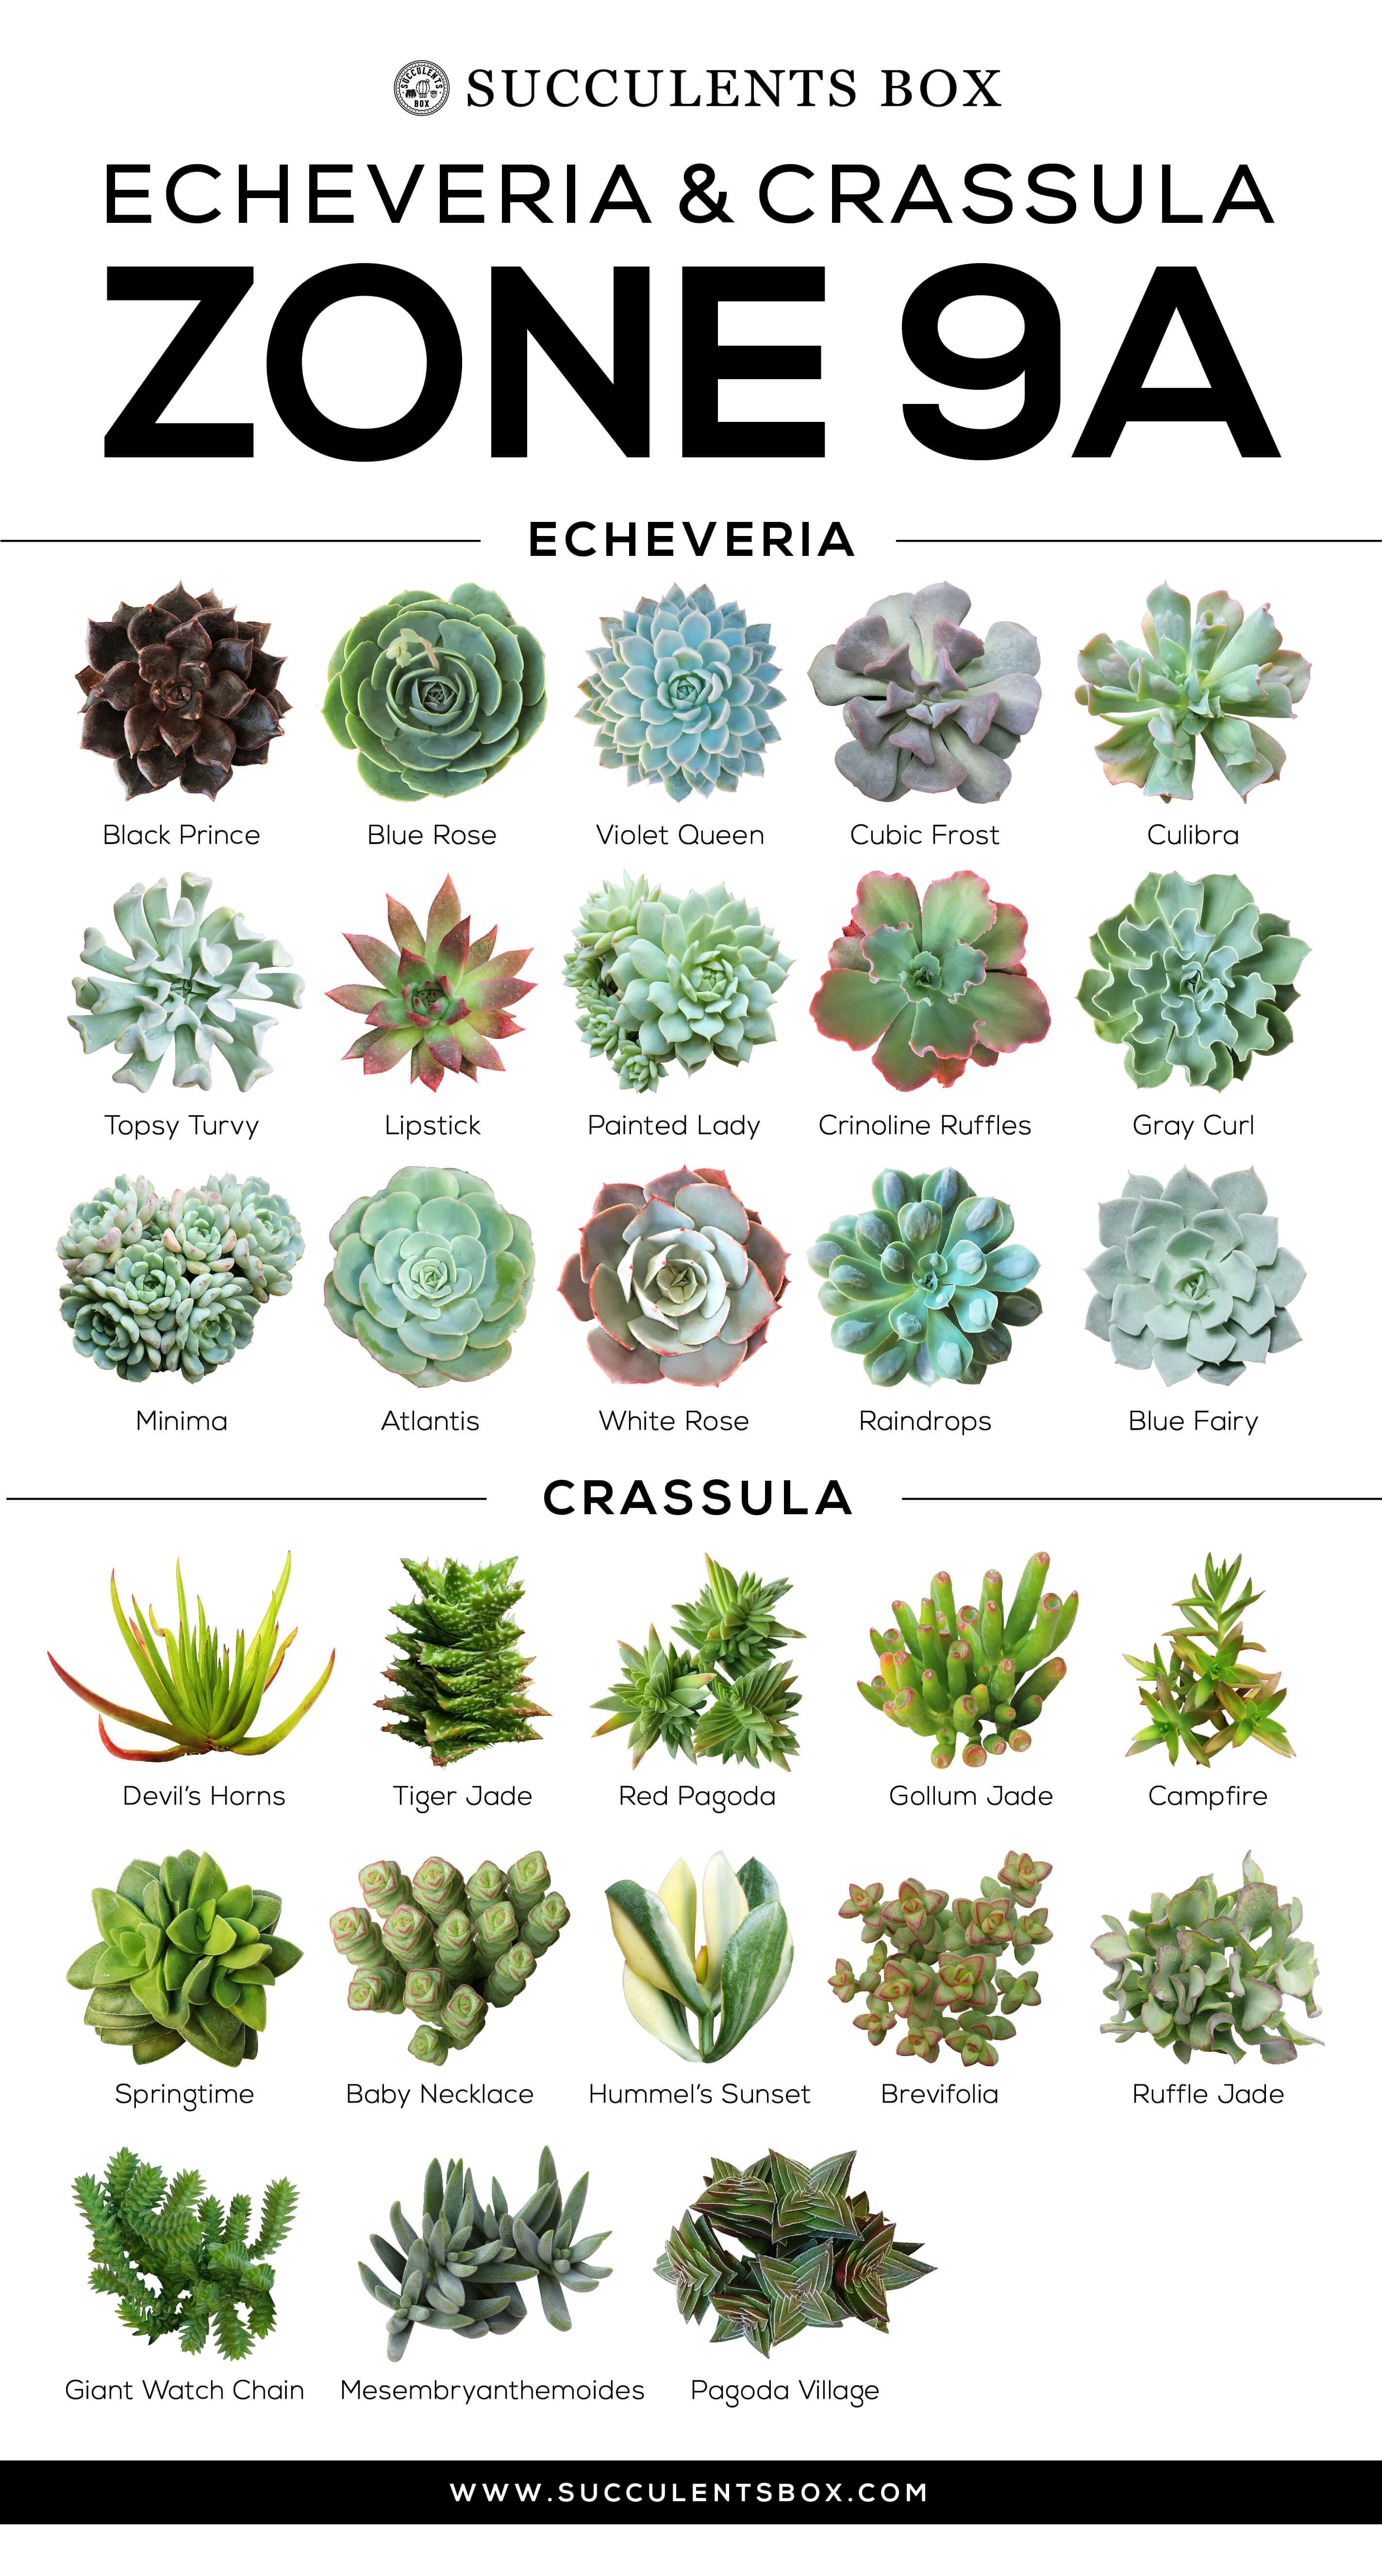 Choosing Succulents For Zone 9 California Florida And Arizona